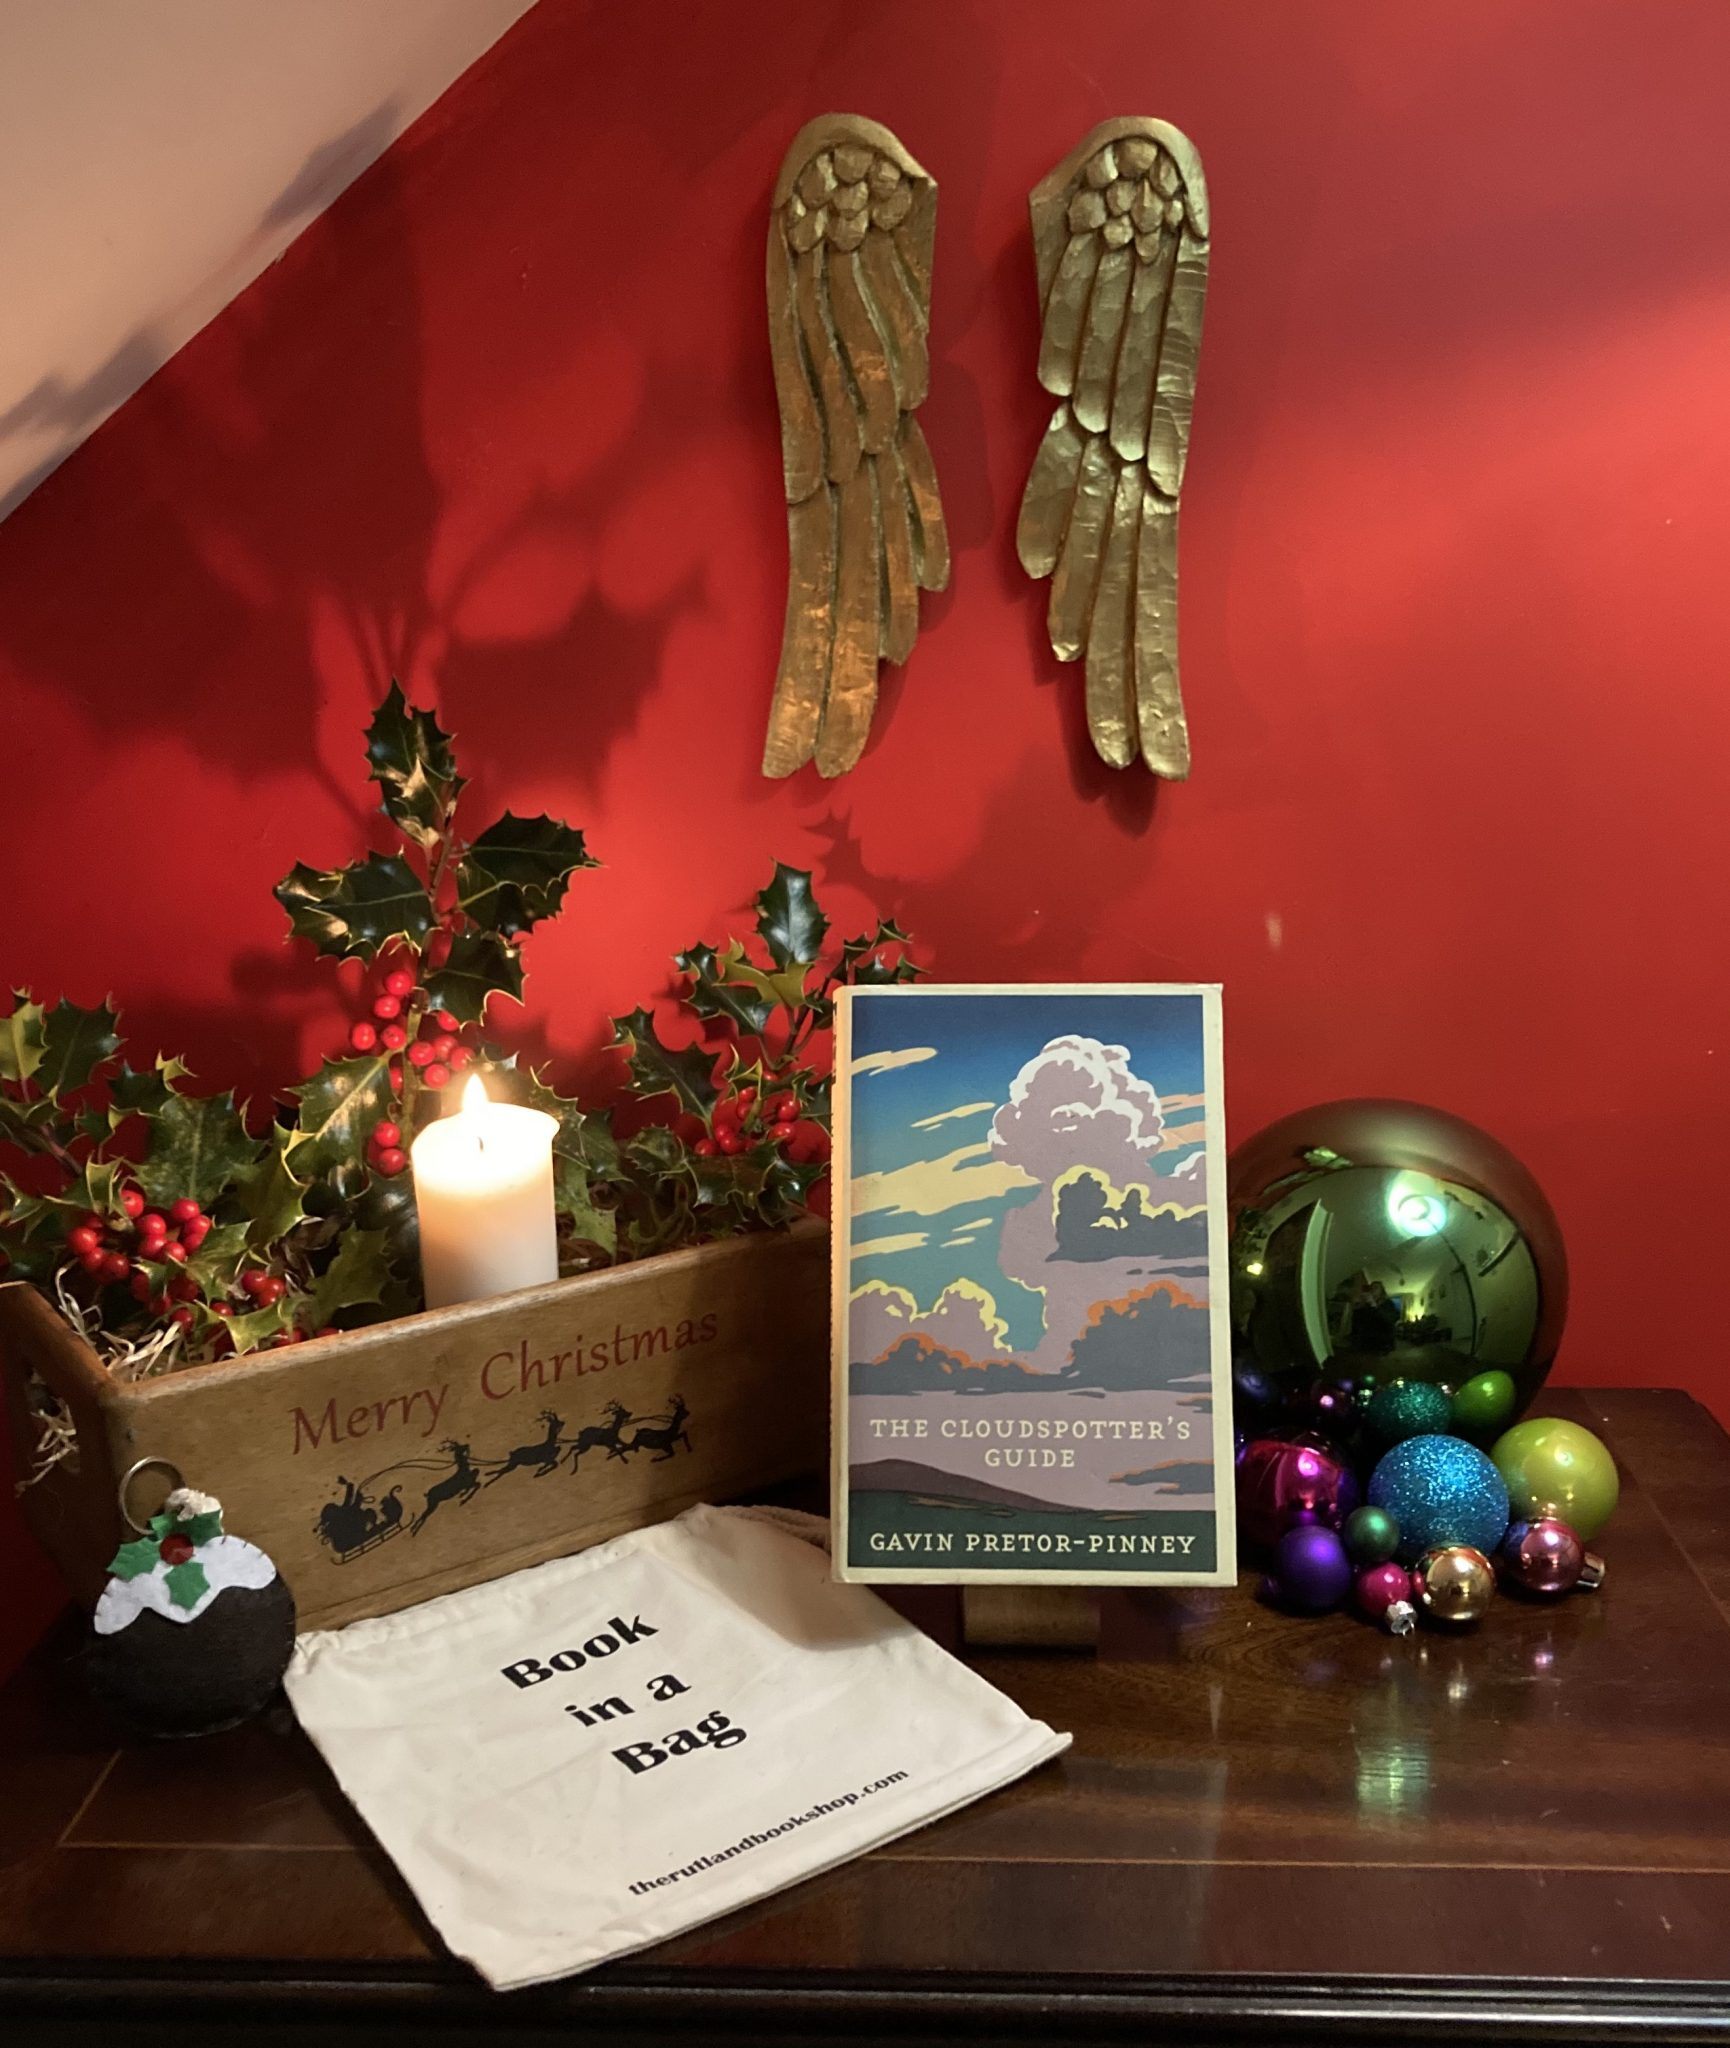 Christmas Book In A Bag: The Cloud Spotter's Guide